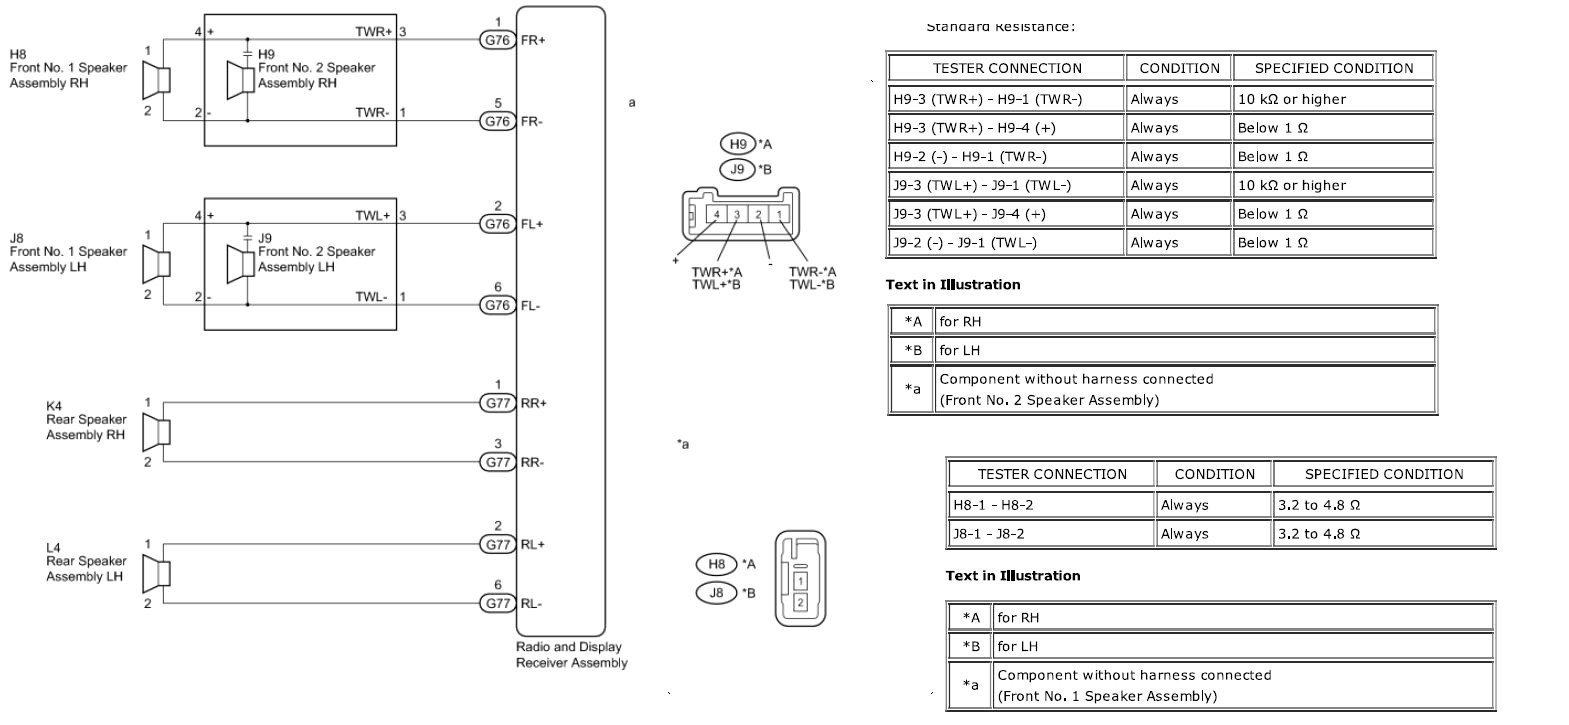 Alpine Power Pack Wiring Diagram Ktp 445U | Wiring Library - Alpine Ktp 445 Wiring Diagram